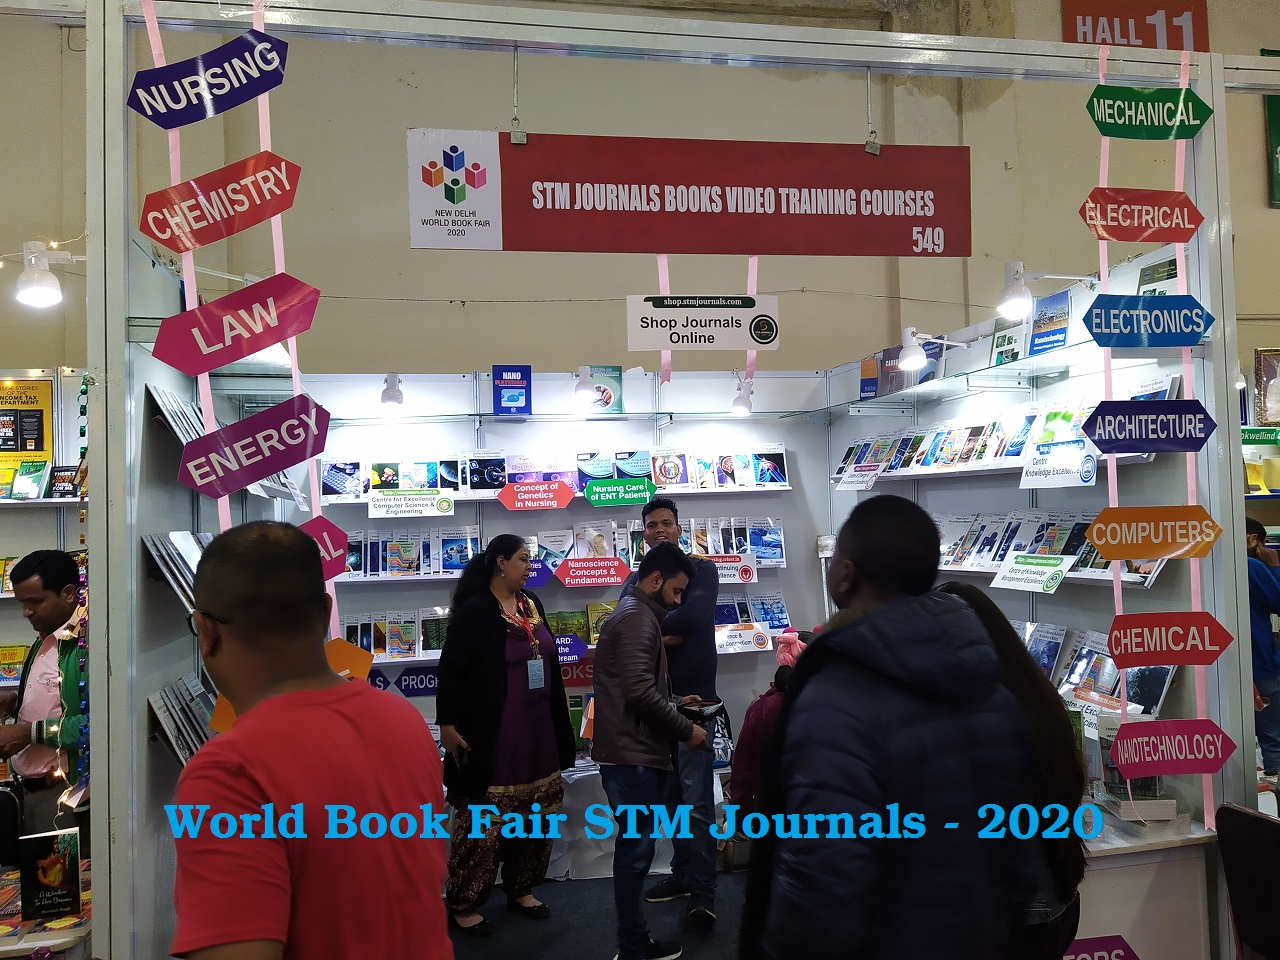 World Book Fair STM Journals 2020